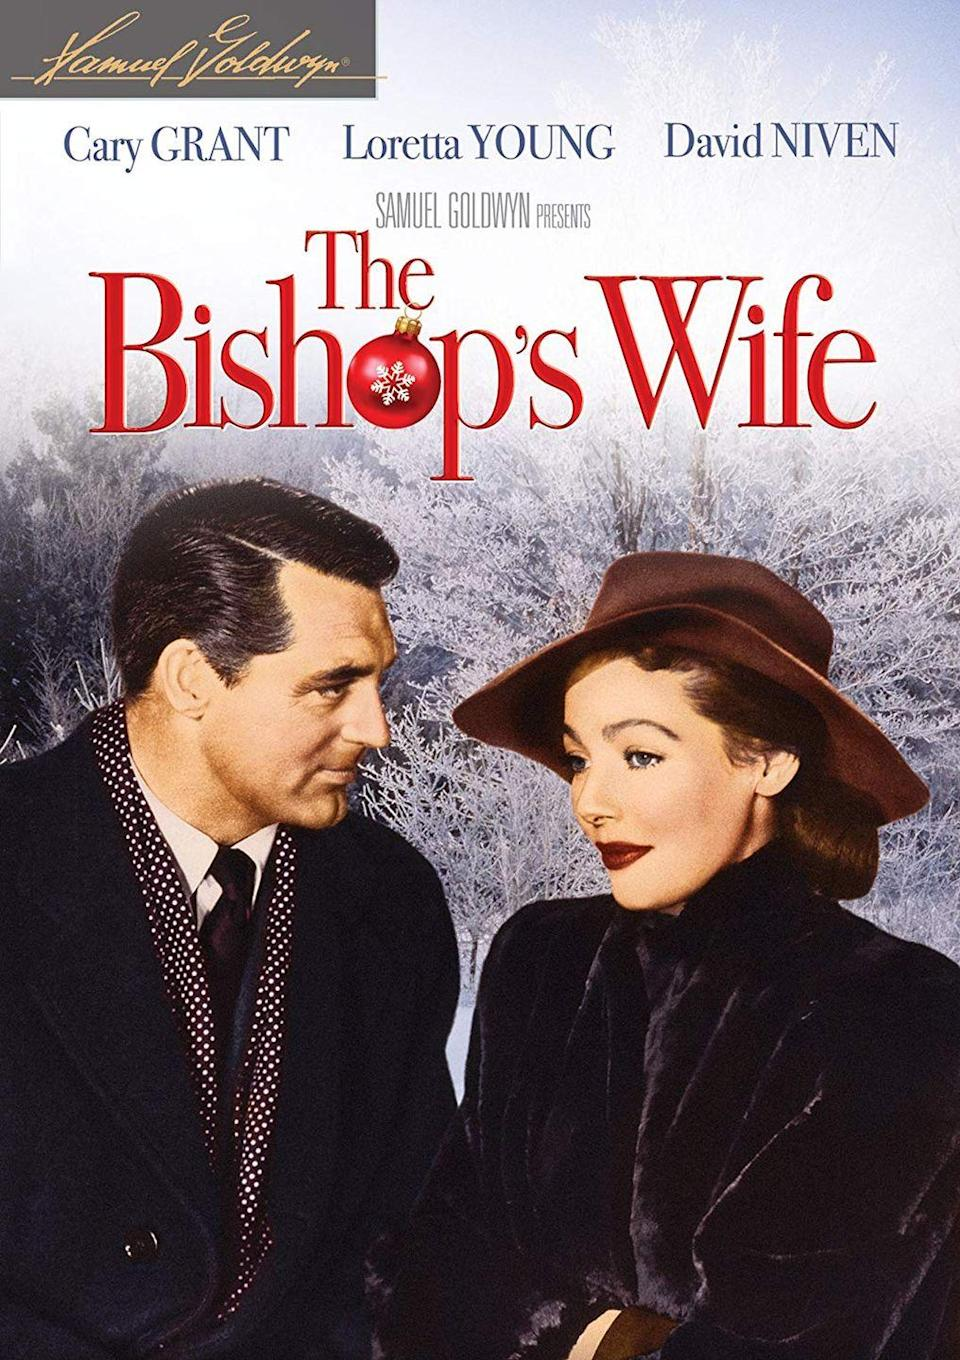 """<p>Cary Grant plays an angel in this 1947 movie that inspired '90s remake <em>The Preacher's Wife</em>, which stars Denzel Washington and Whitney Houston.</p><p><a class=""""link rapid-noclick-resp"""" href=""""https://www.amazon.com/Bishops-Wife-Henry-Koster/dp/B00AATV046/?tag=syn-yahoo-20&ascsubtag=%5Bartid%7C10055.g.1315%5Bsrc%7Cyahoo-us"""" rel=""""nofollow noopener"""" target=""""_blank"""" data-ylk=""""slk:WATCH NOW"""">WATCH NOW</a></p>"""